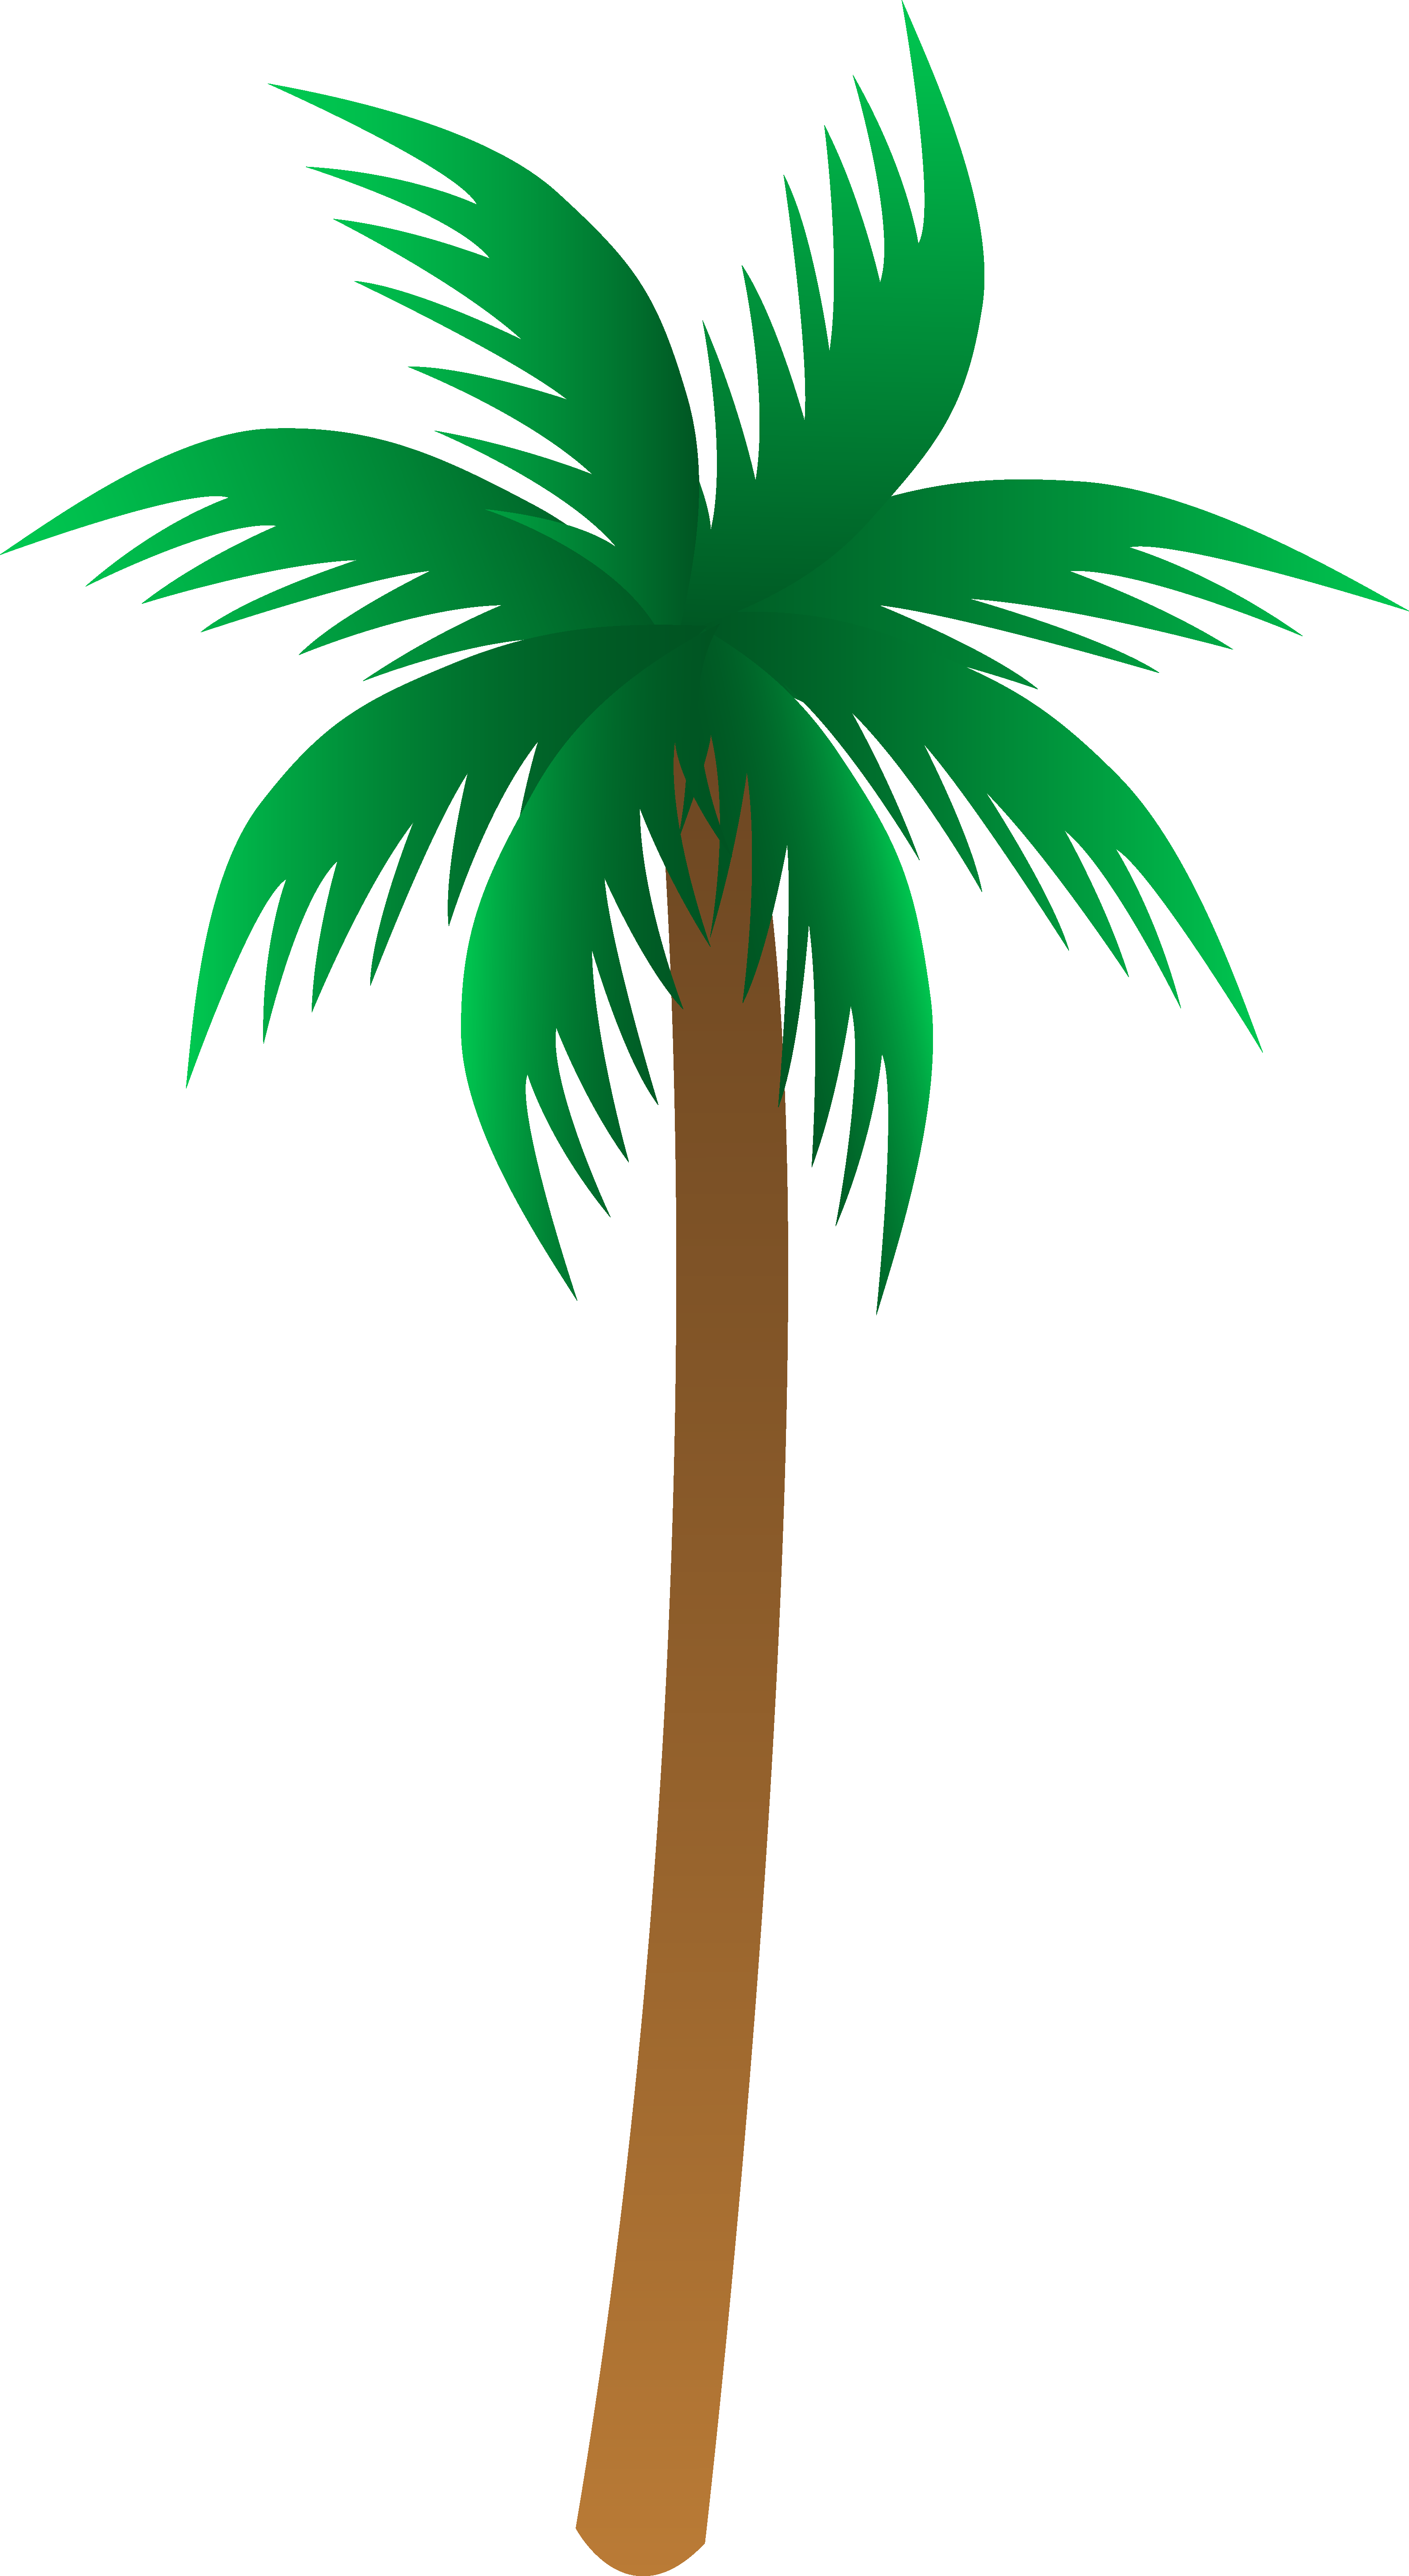 Palm tree clipart #8